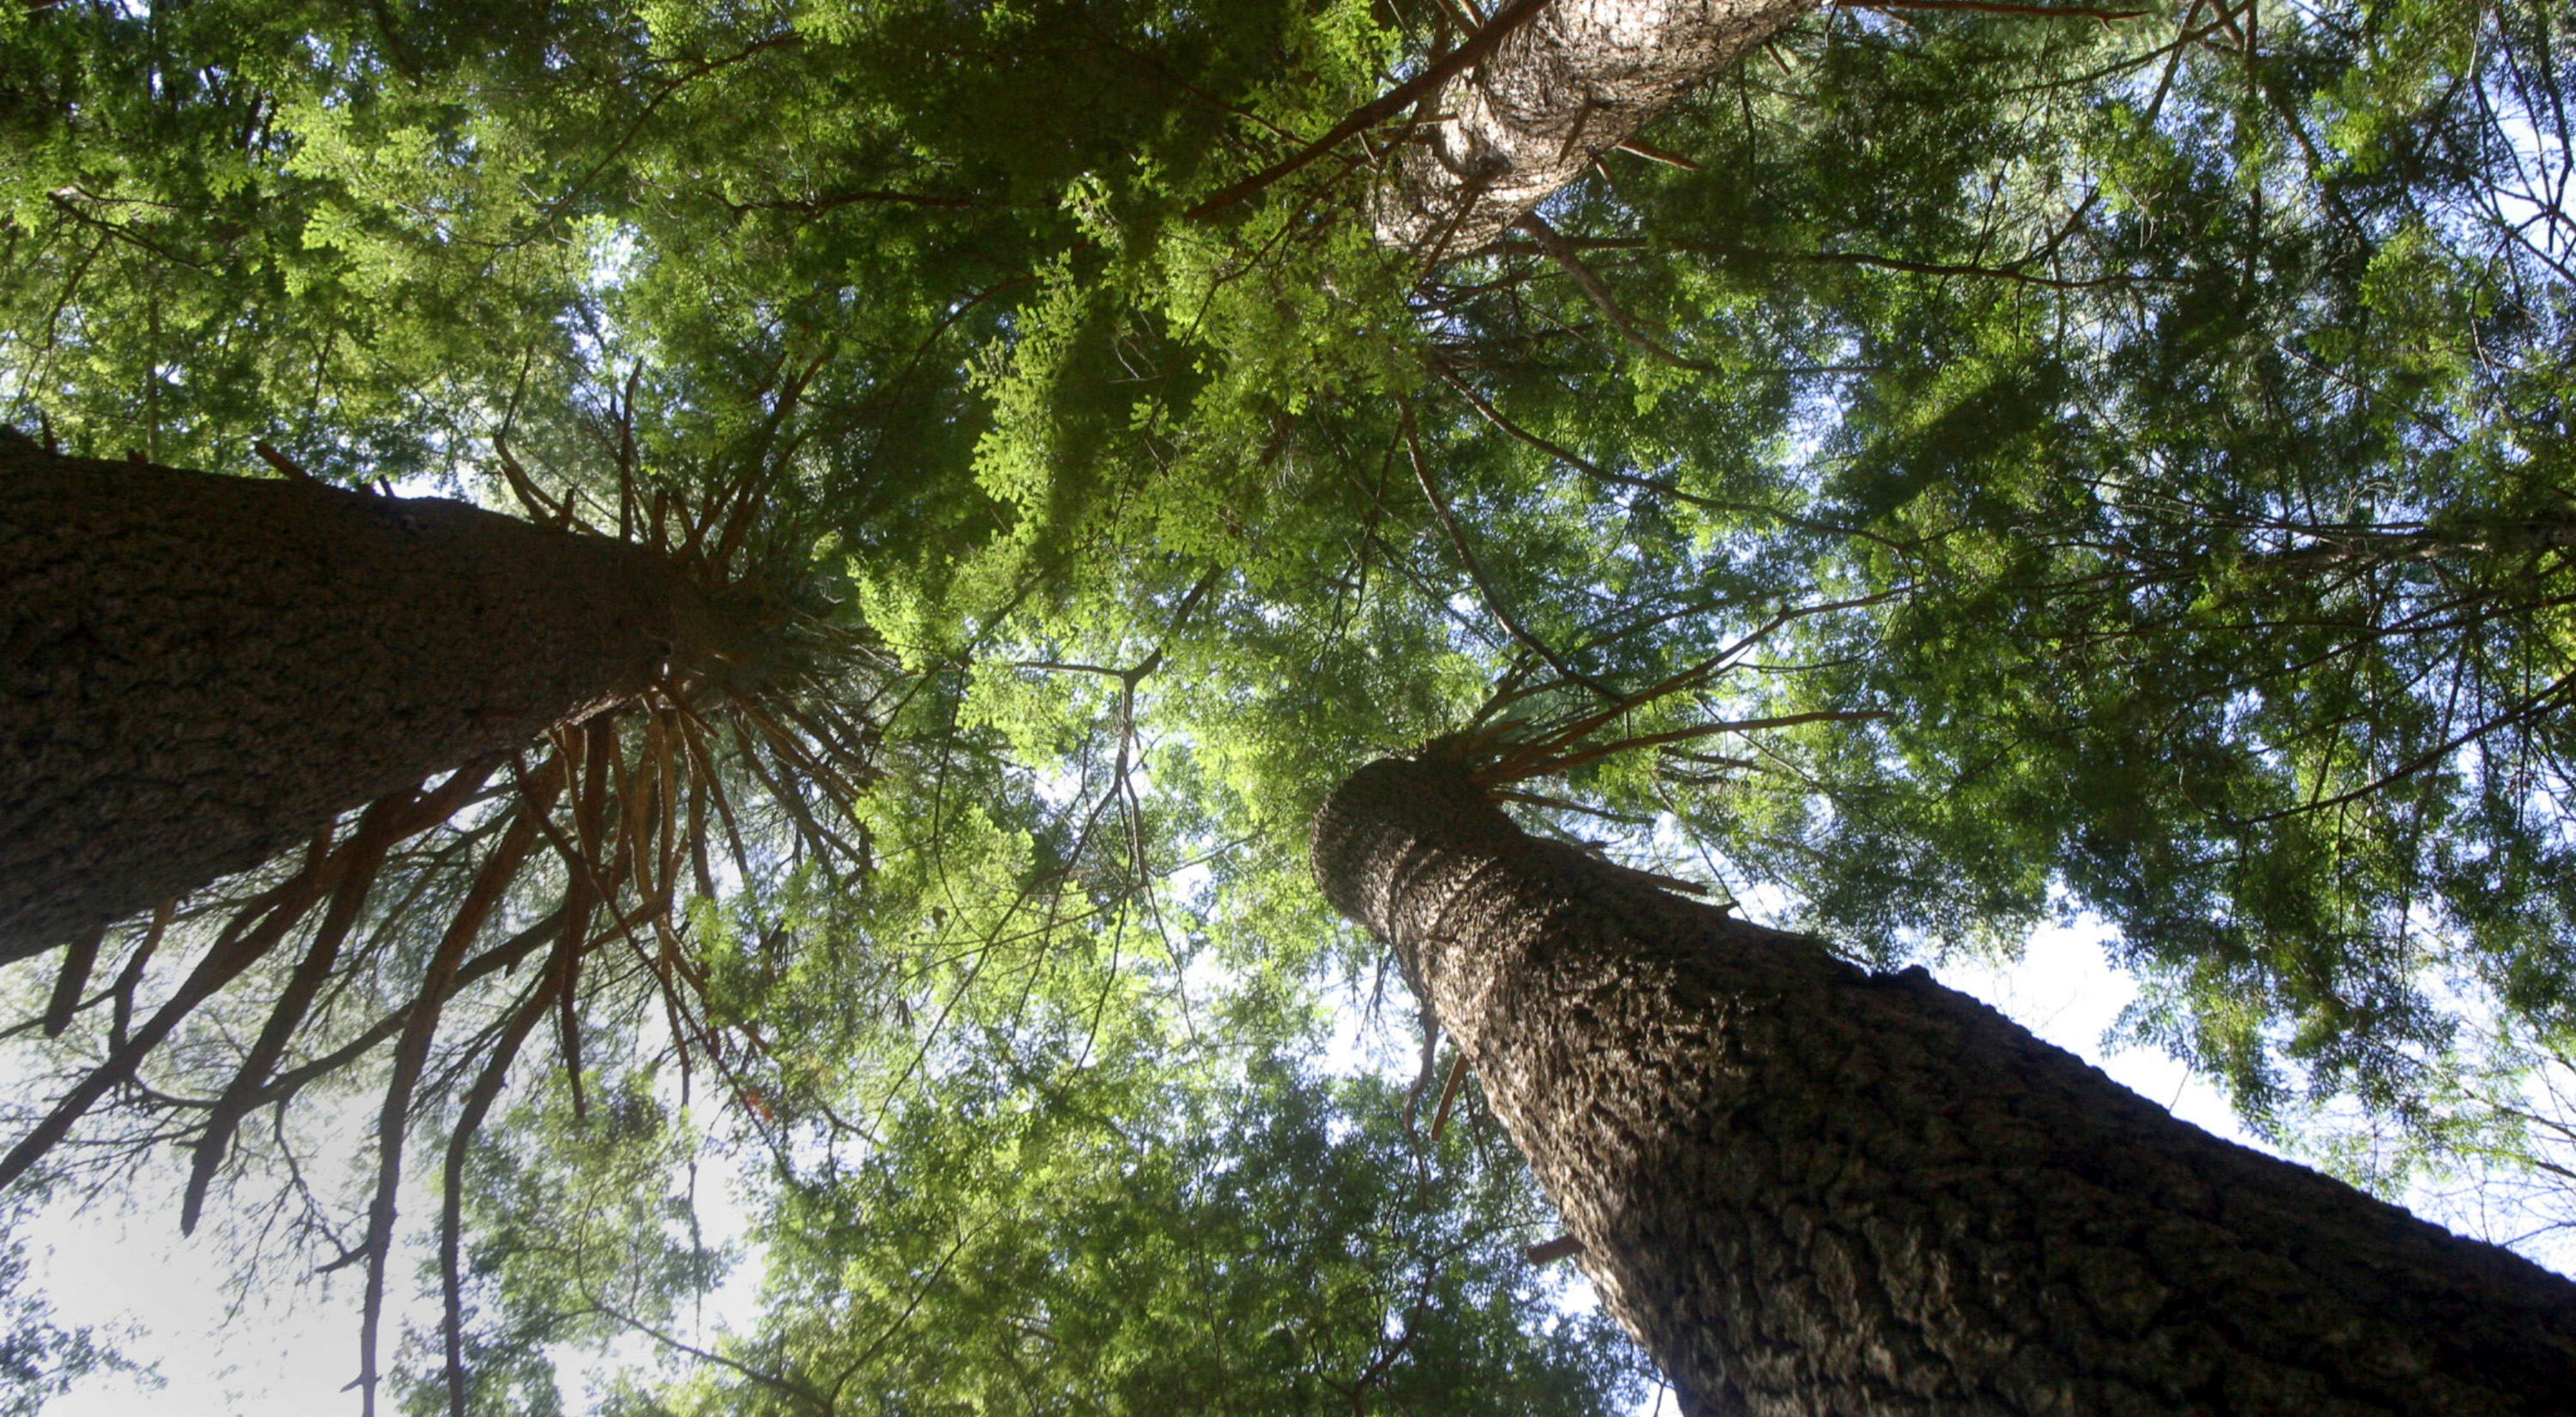 Looking upward into tall white pines.